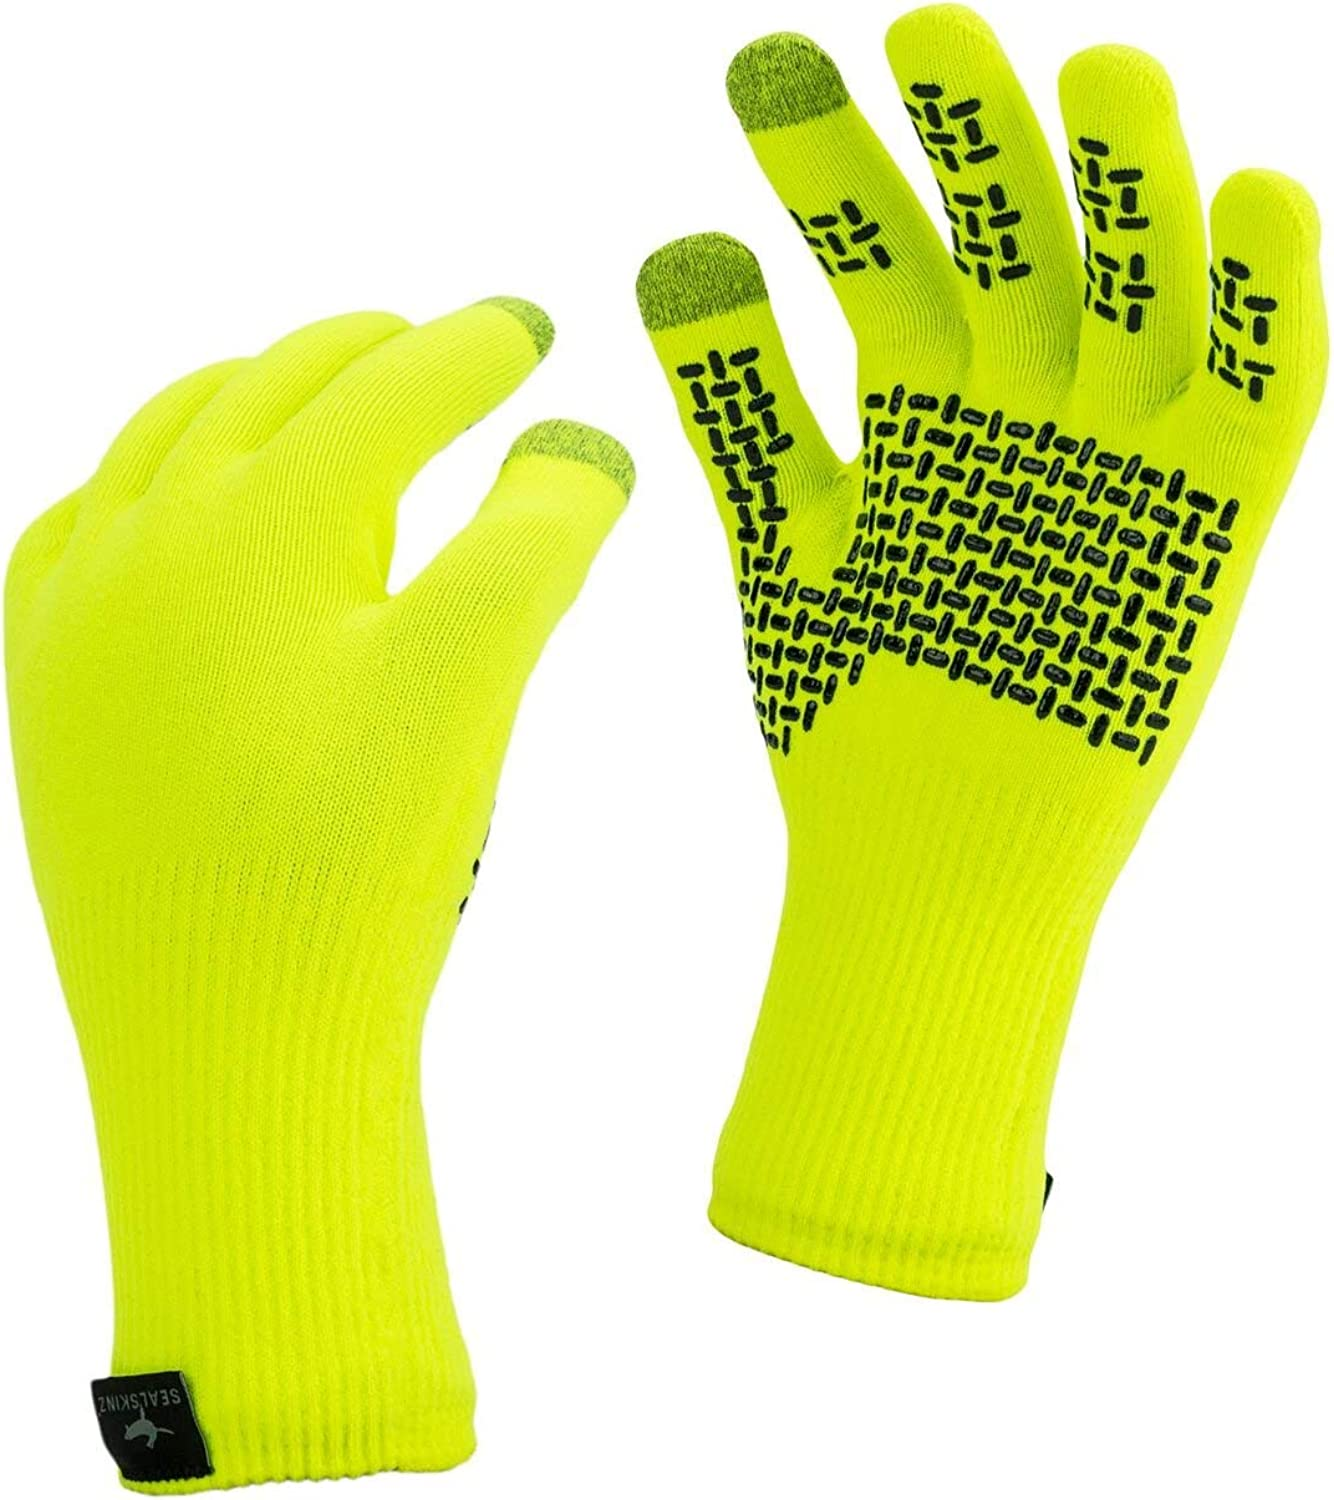 camping knitted with added grip /& touchscreen function suitable for walking hiking SealSkinz 100/% Waterproof Glove fishing and activities in All Weather conditions Windproof /& Breathable